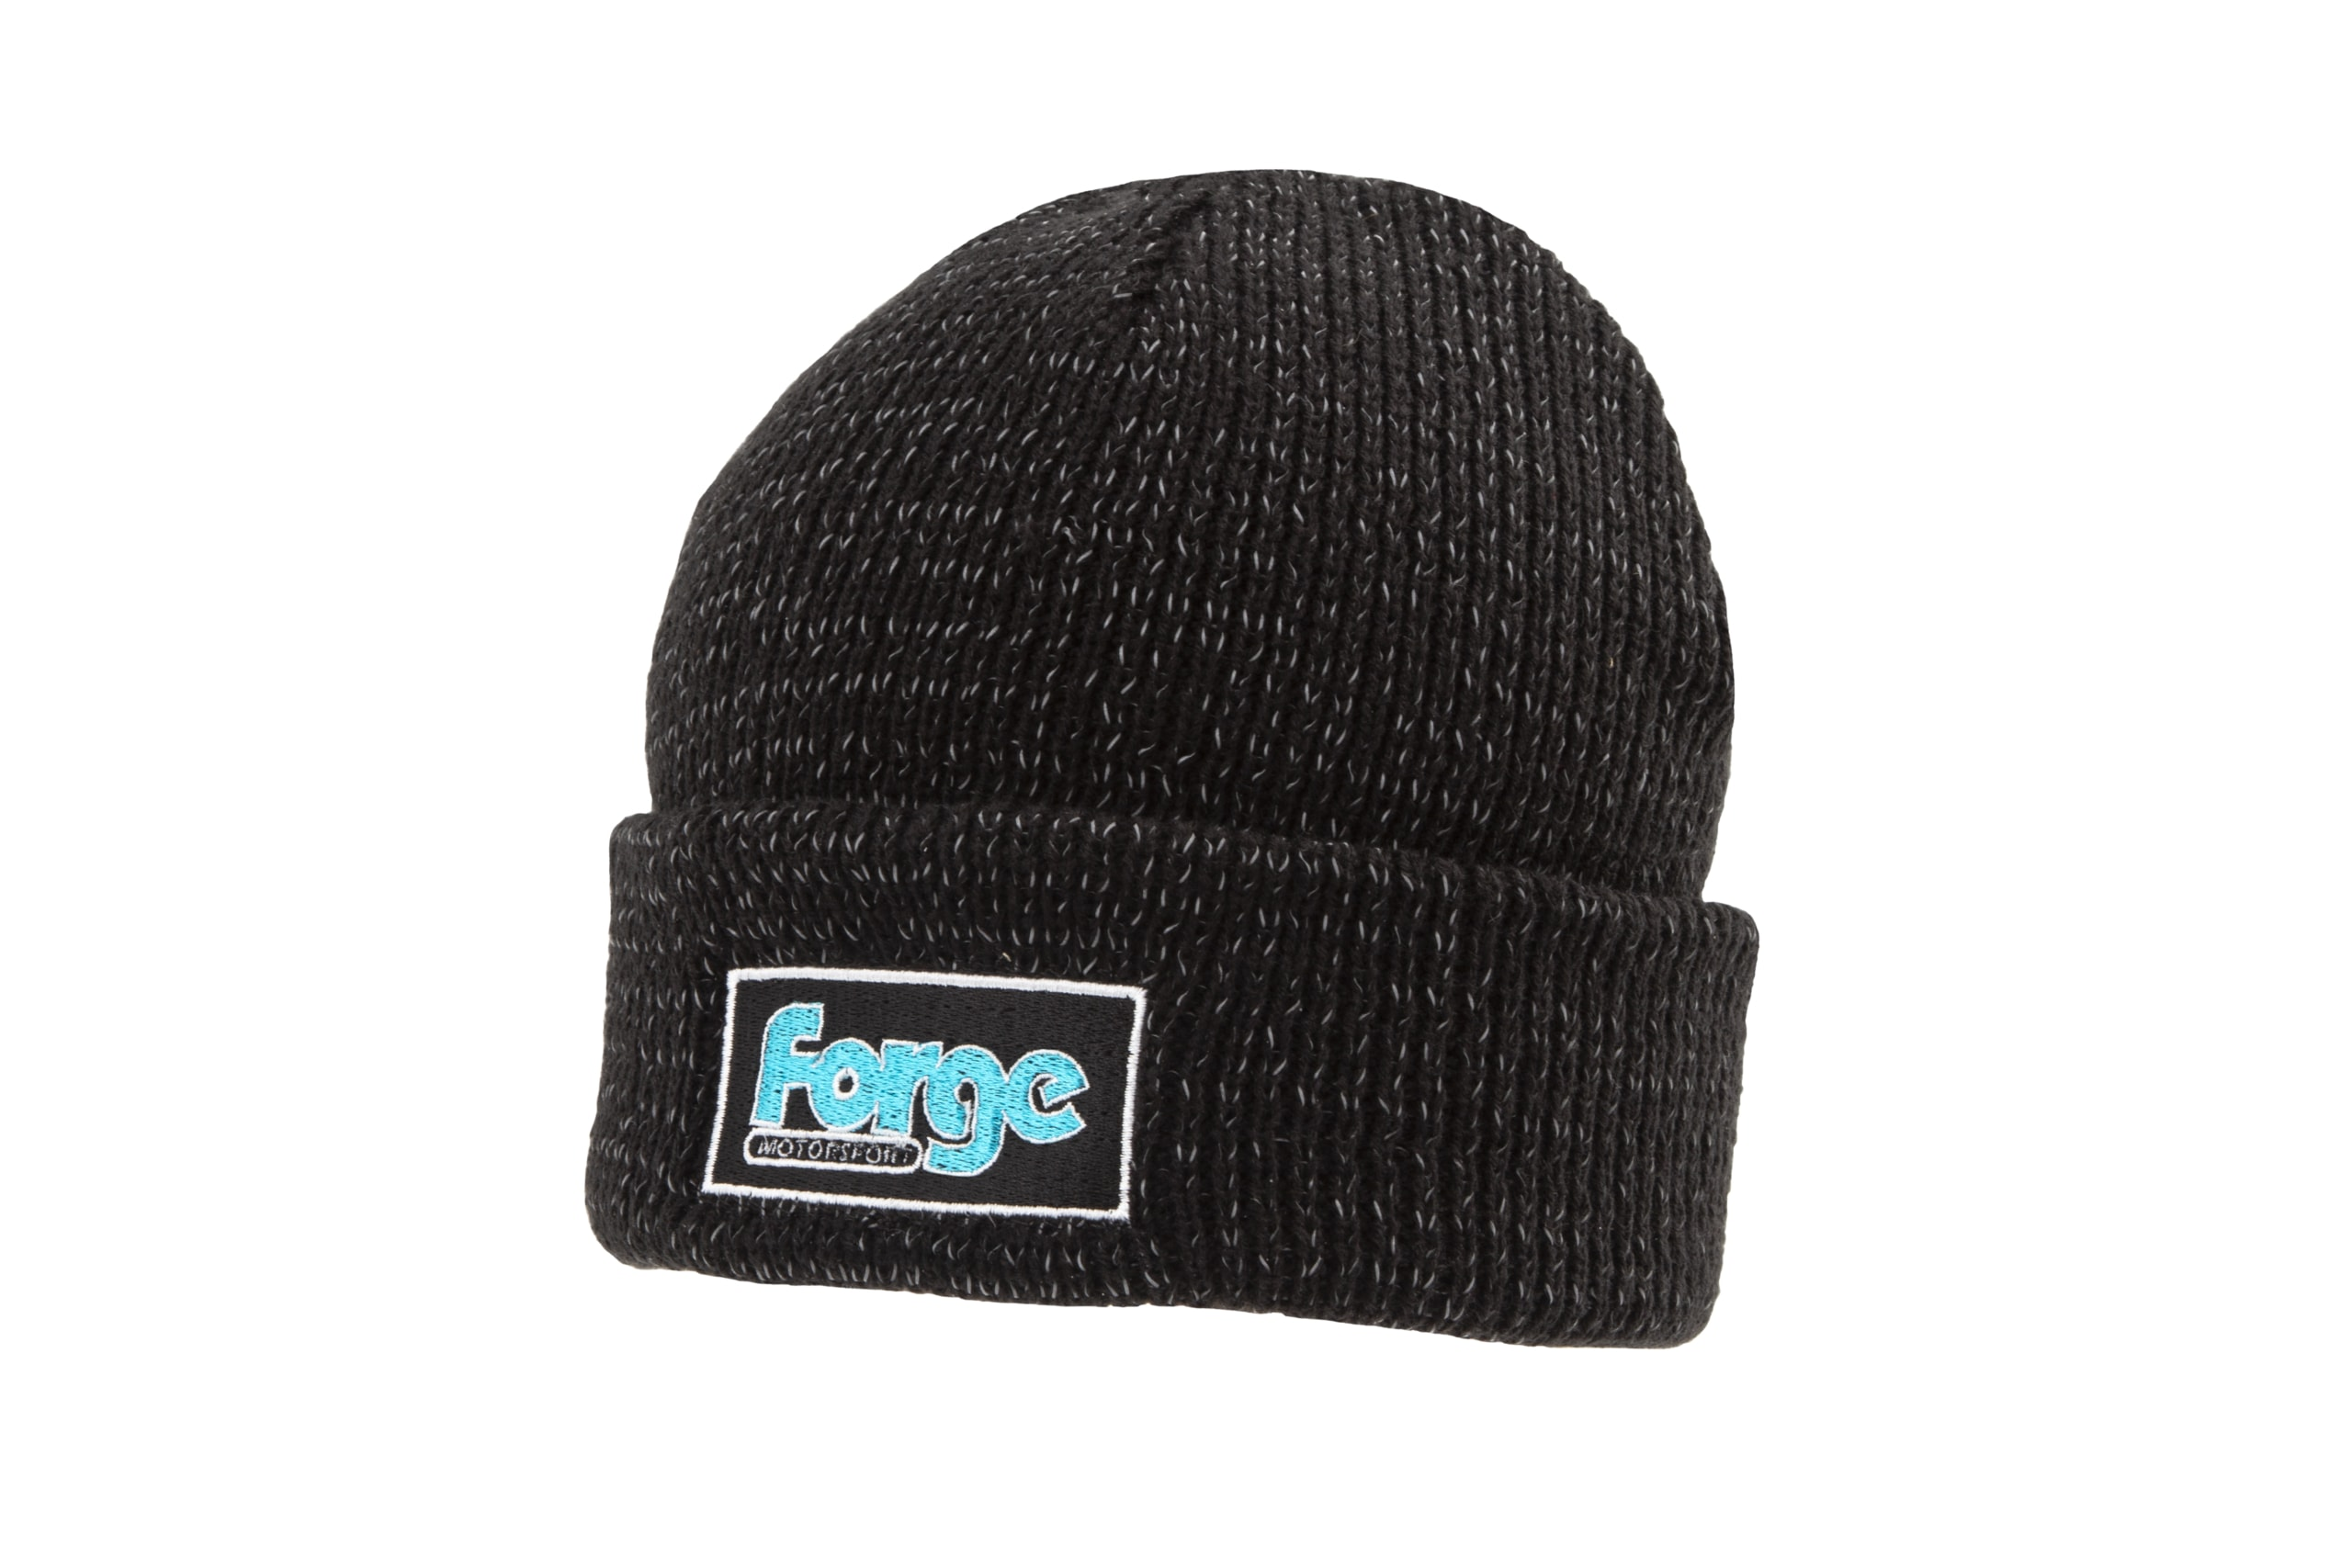 Forge Motorsport Reflective Beanie Hat Woolie Fans Accessory Gift Xmas Birthday Present 3